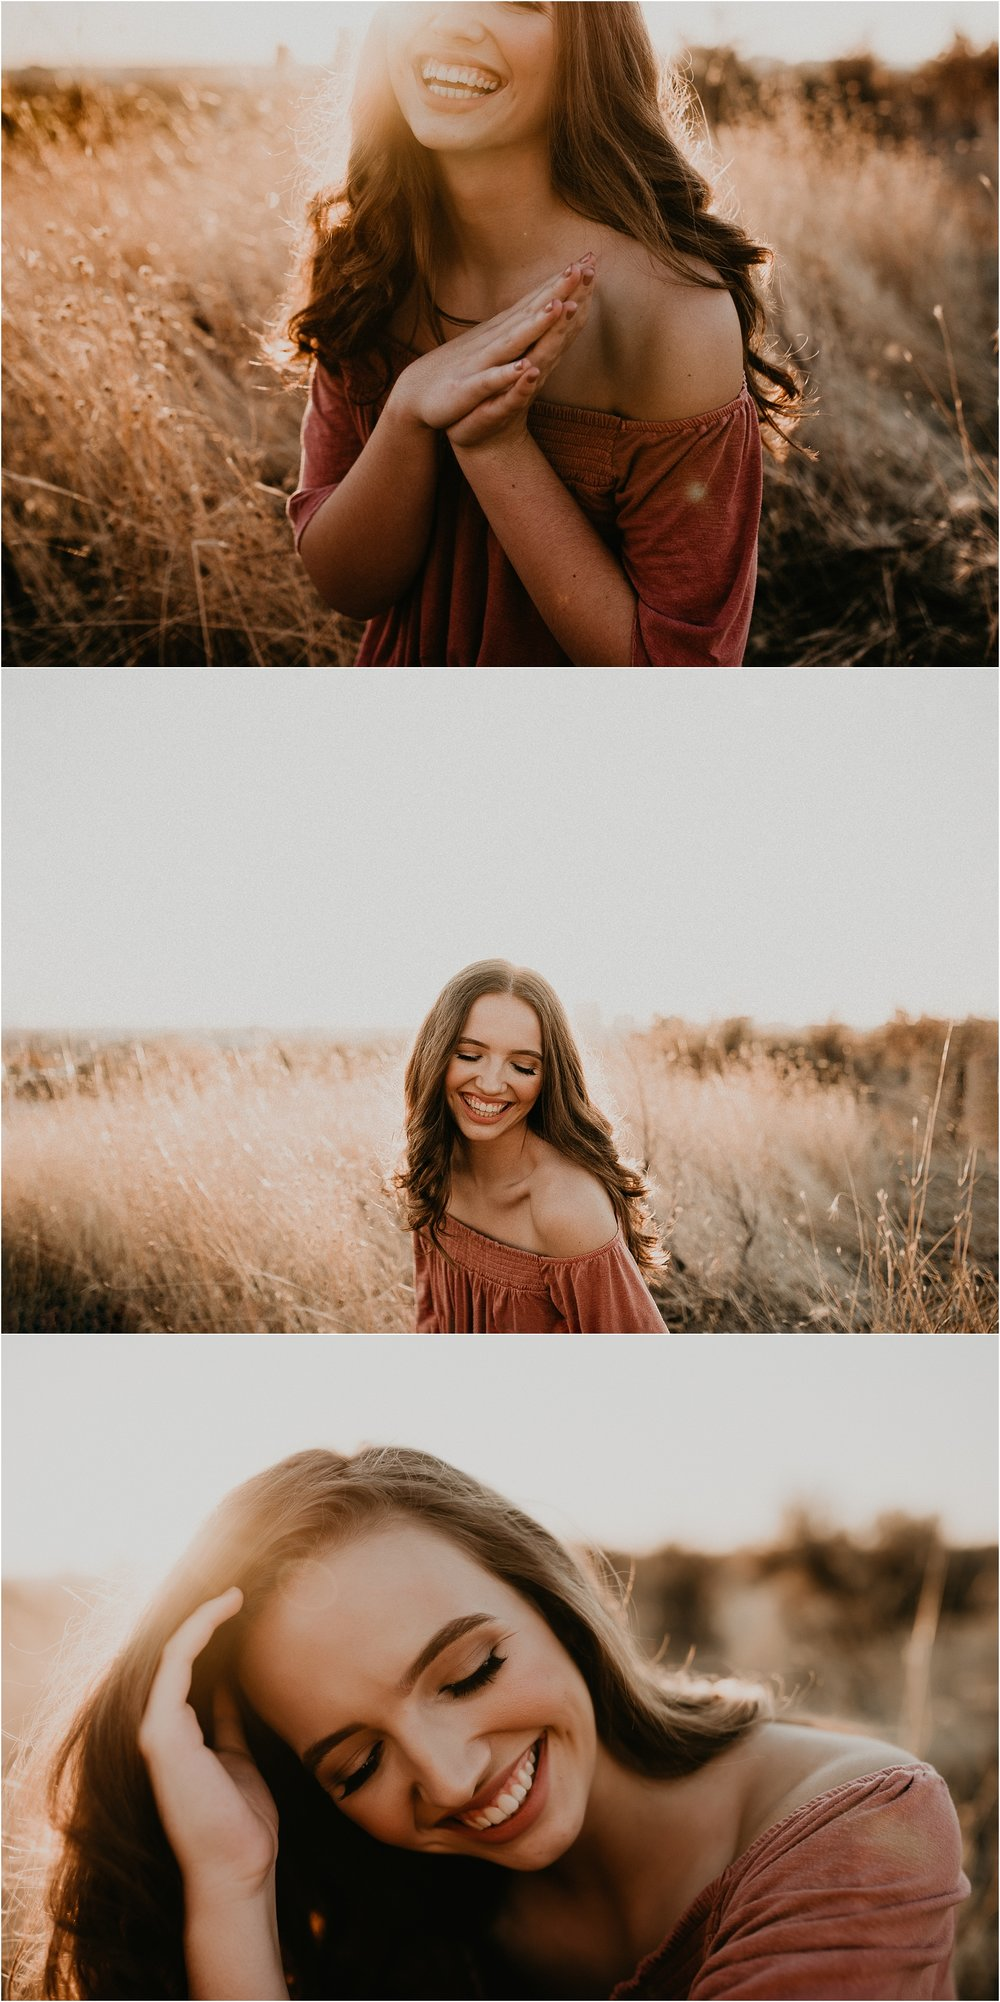 Boise Senior Photographer Downtown Boise Senior Pictures Boise Foothills Senior Outfit Locations Raw Real Natural Candid Moments Fall meridian senior photographer